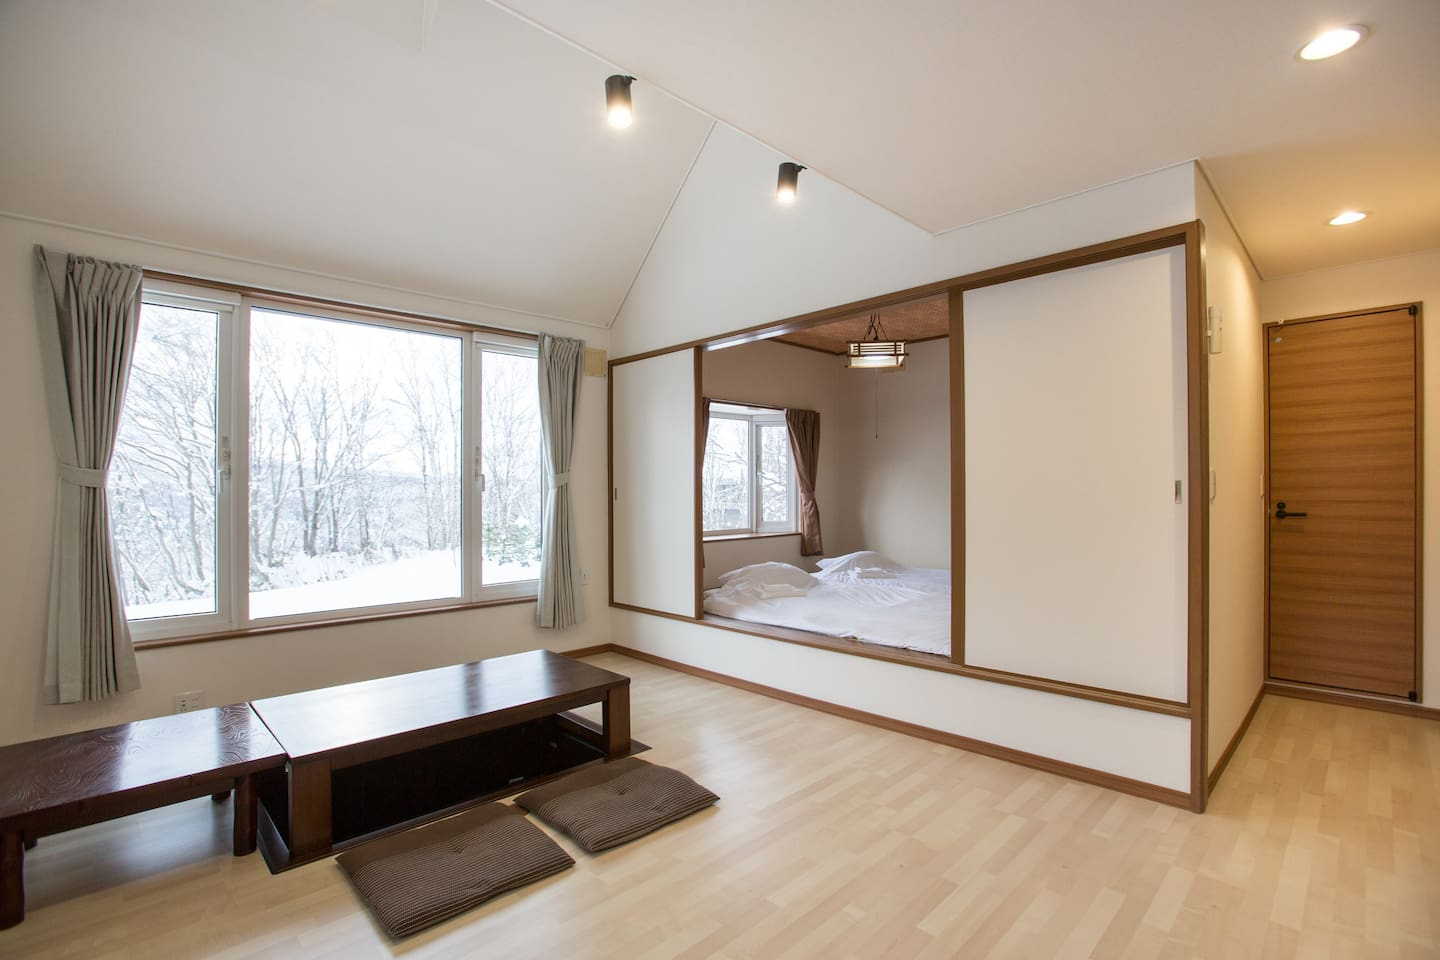 Open kitchen, dining and tatami room; tatami room doubles as a lounging area with bean bags and a low level table